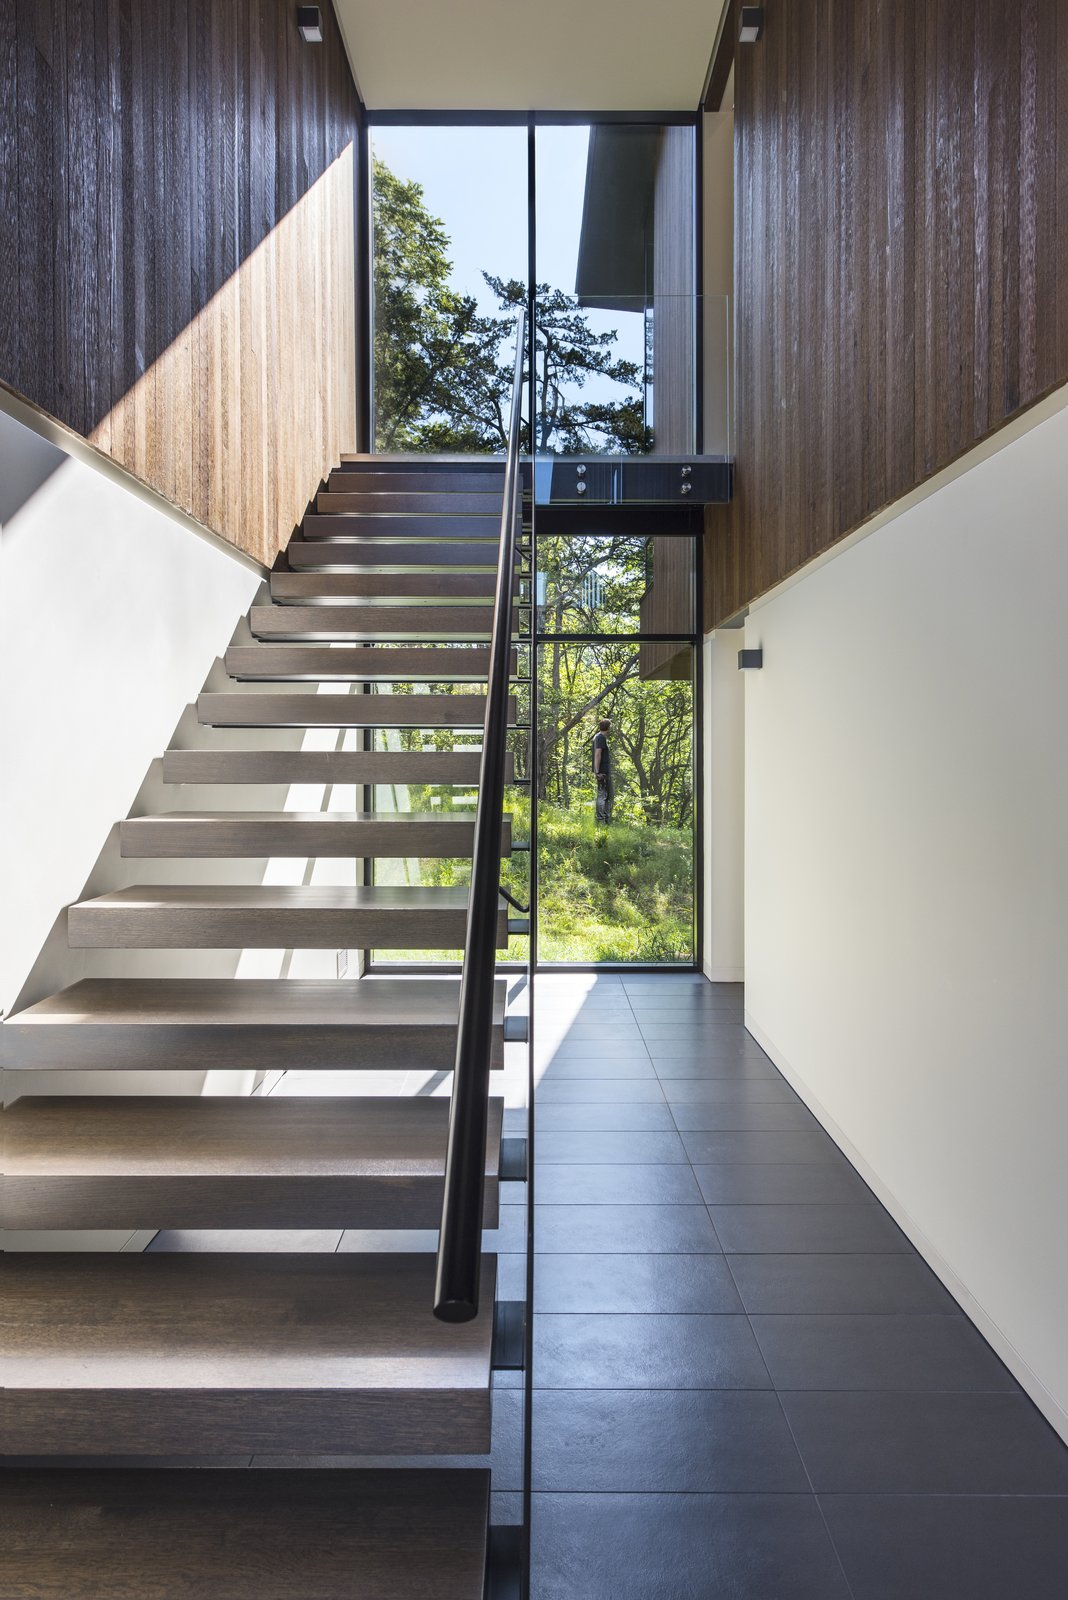 Staircase, Metal Railing, And Wood Tread Open Stair Treads, Composed Of  Rift Awn